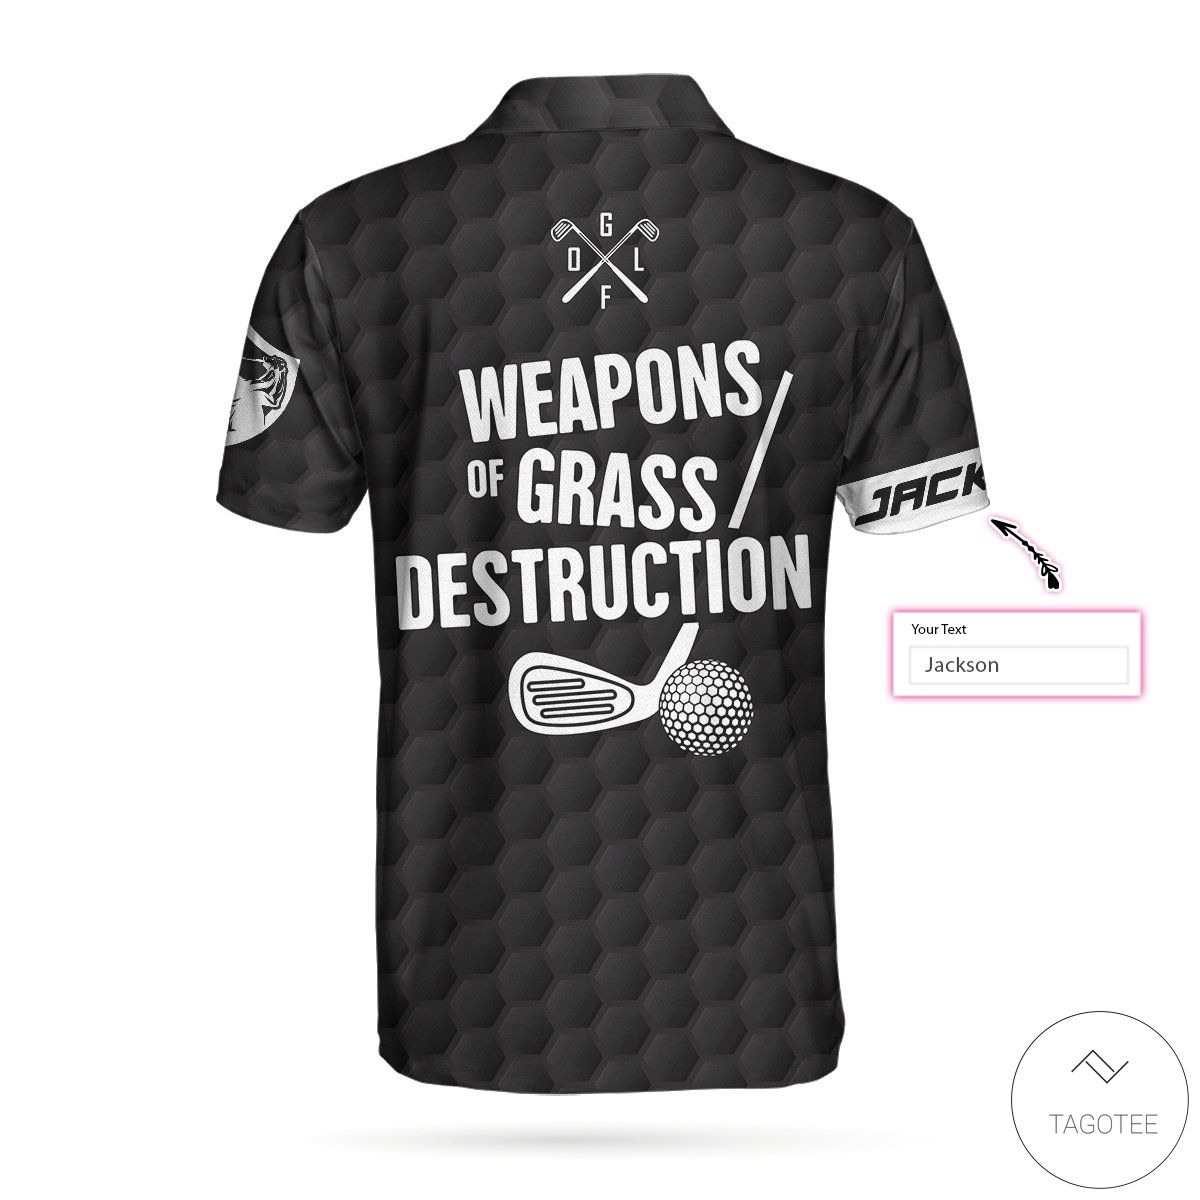 Where To Buy Weapons Of Grass Destruction Golf Polo Shirt